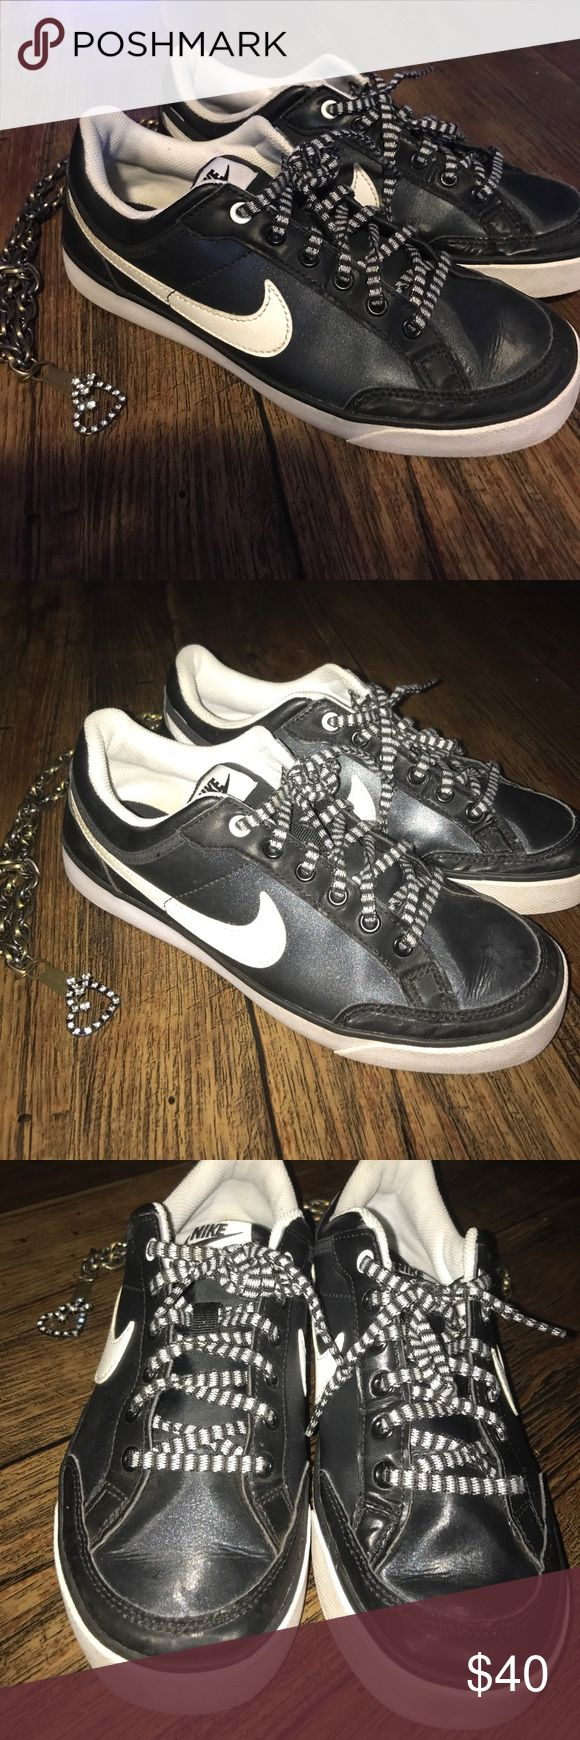 Size 5.5 Nike Sneakers Like New only worn2x Nike sneakers Smoke Free Pet Free home Nike Shoes Sneakers